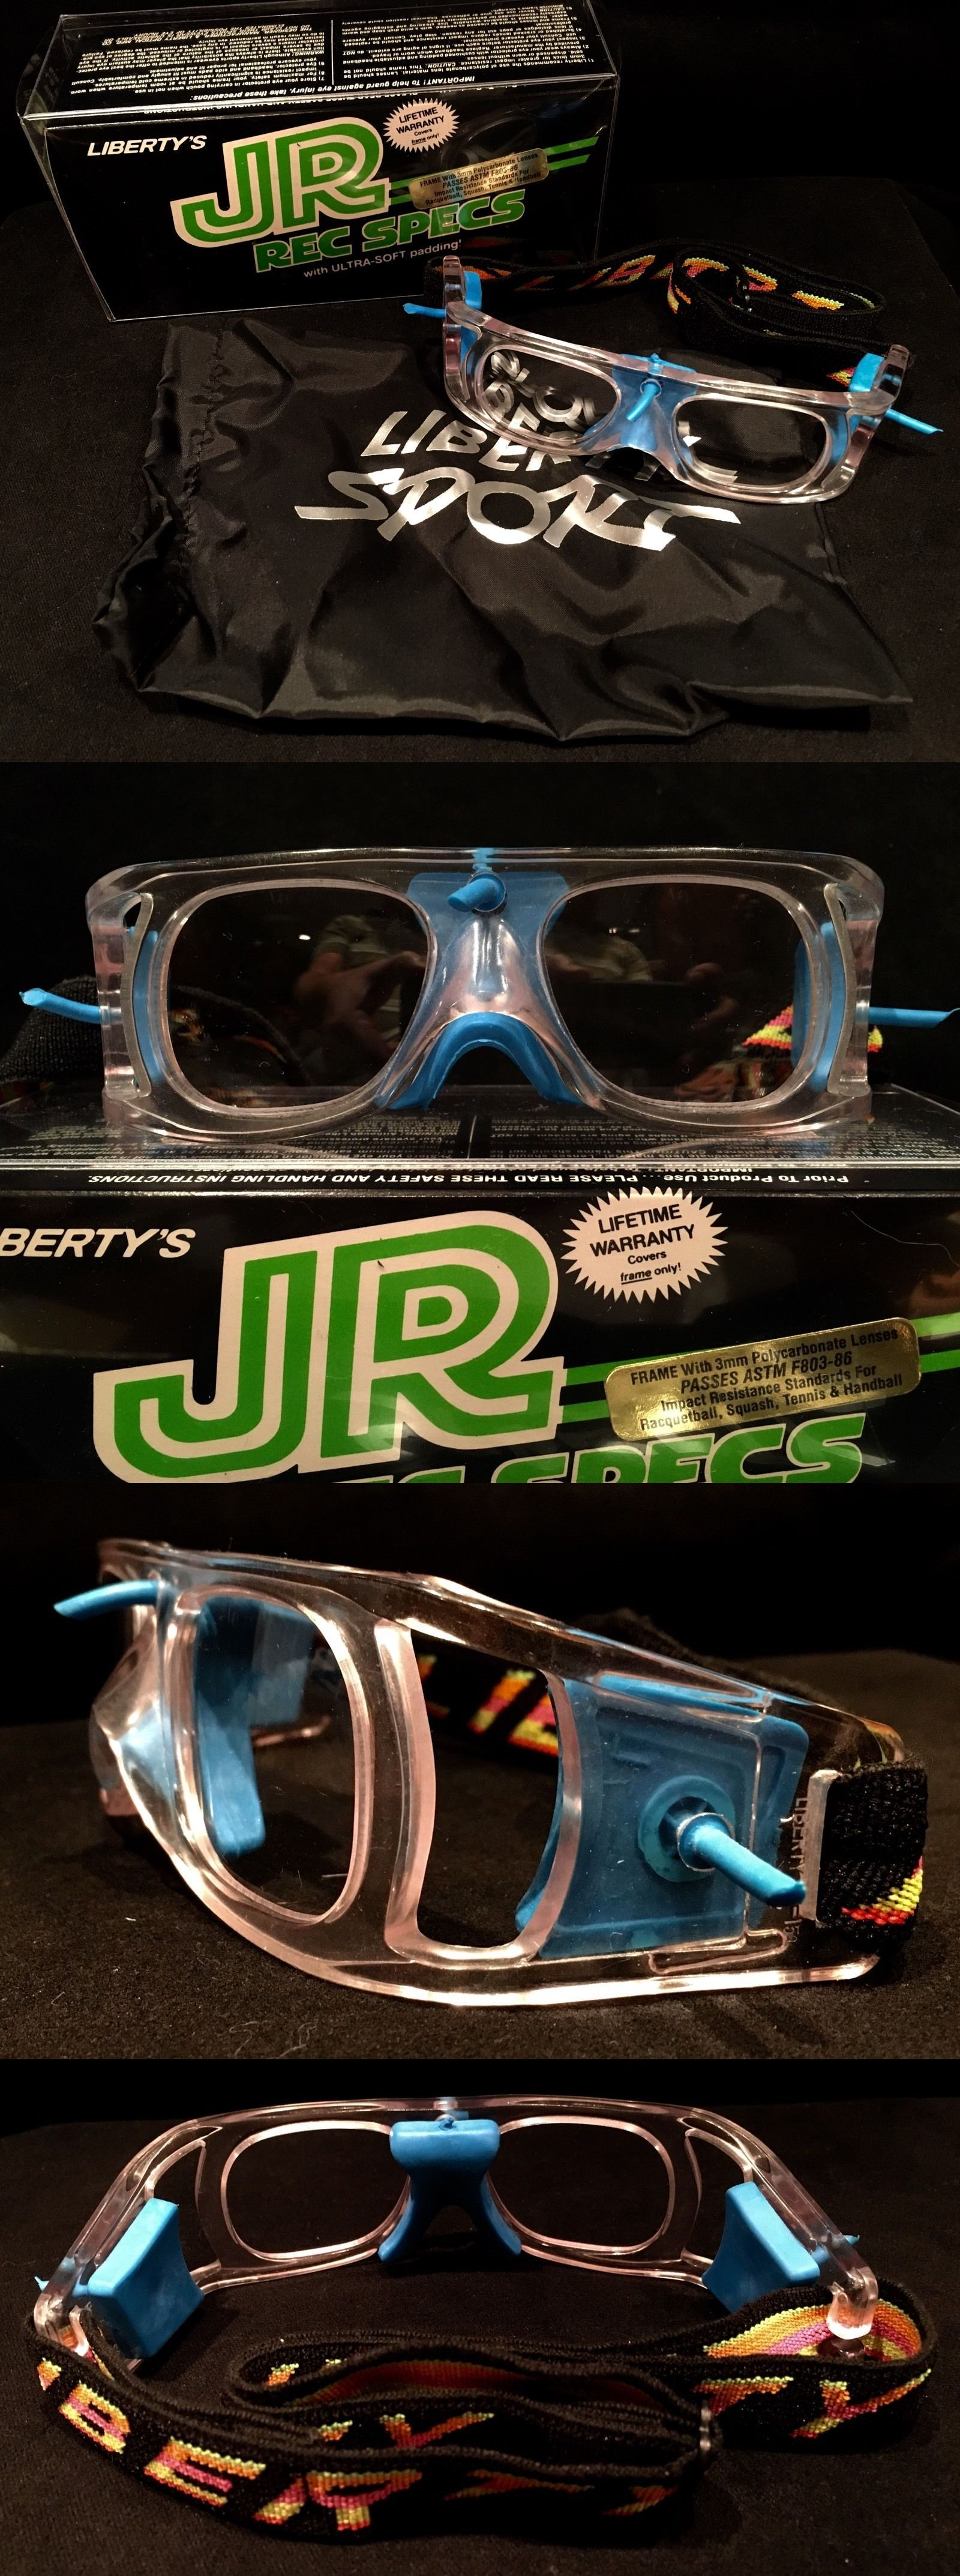 Protective Gear 158969: Kids Liberty Protective Goggles Junior Rec Specs Neon Blue Size Small -> BUY IT NOW ONLY: $125 on eBay!